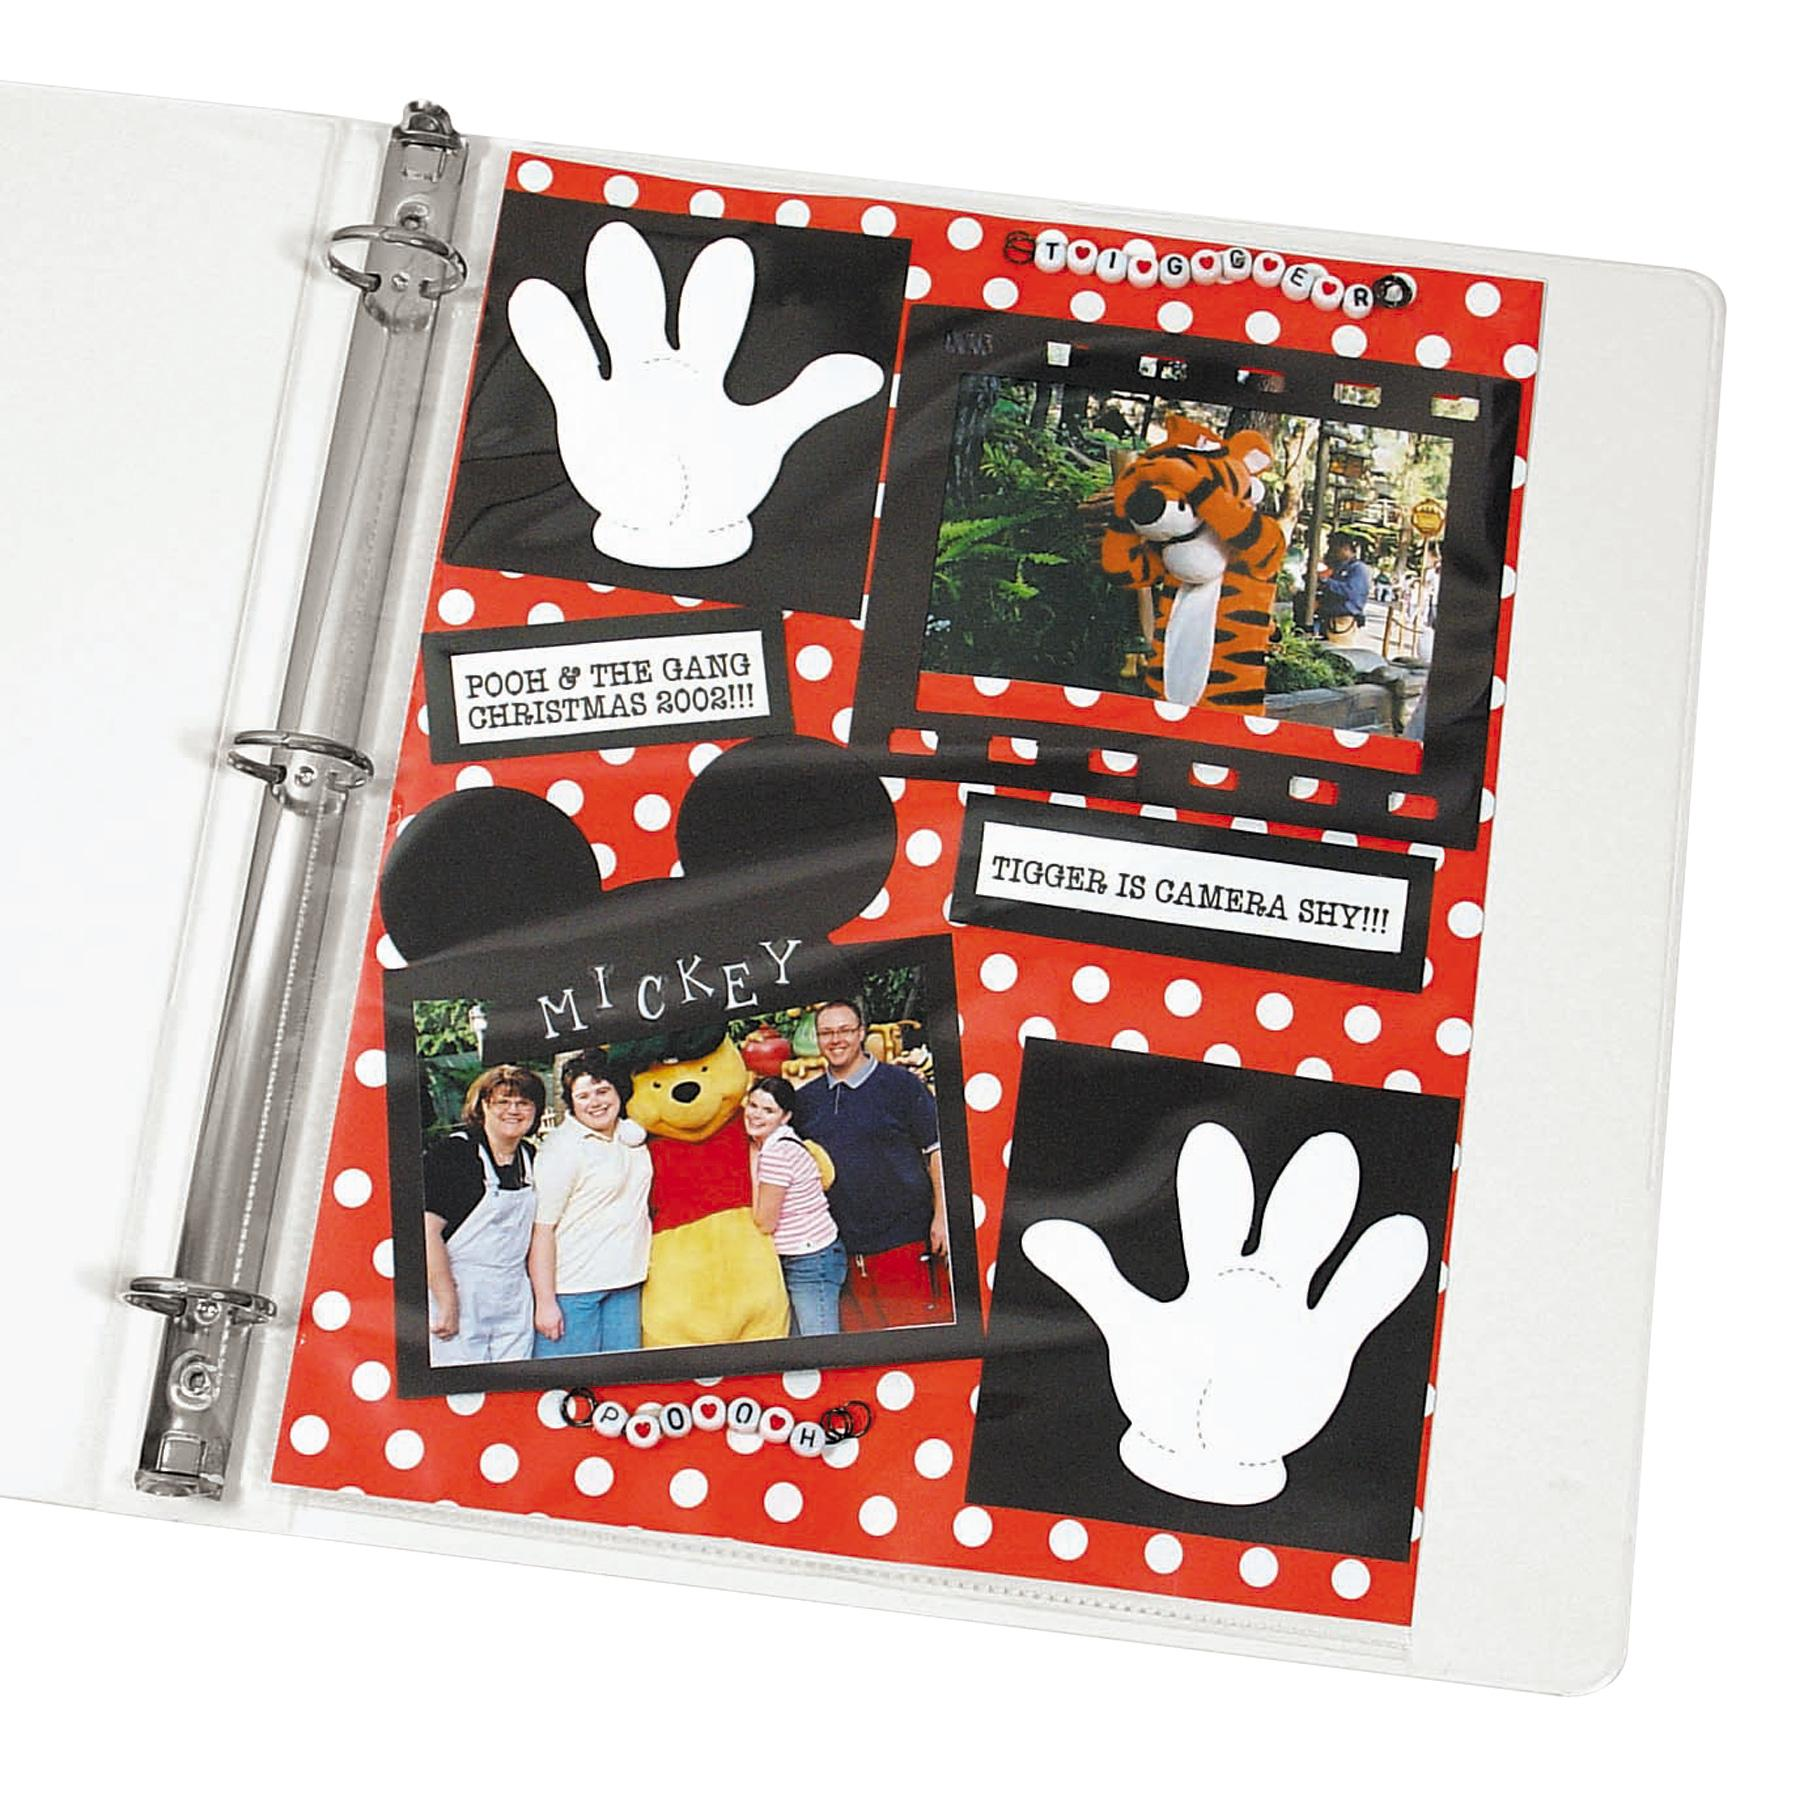 How to scrapbook without page protectors -  Scrapbook Page Protectors View Larger